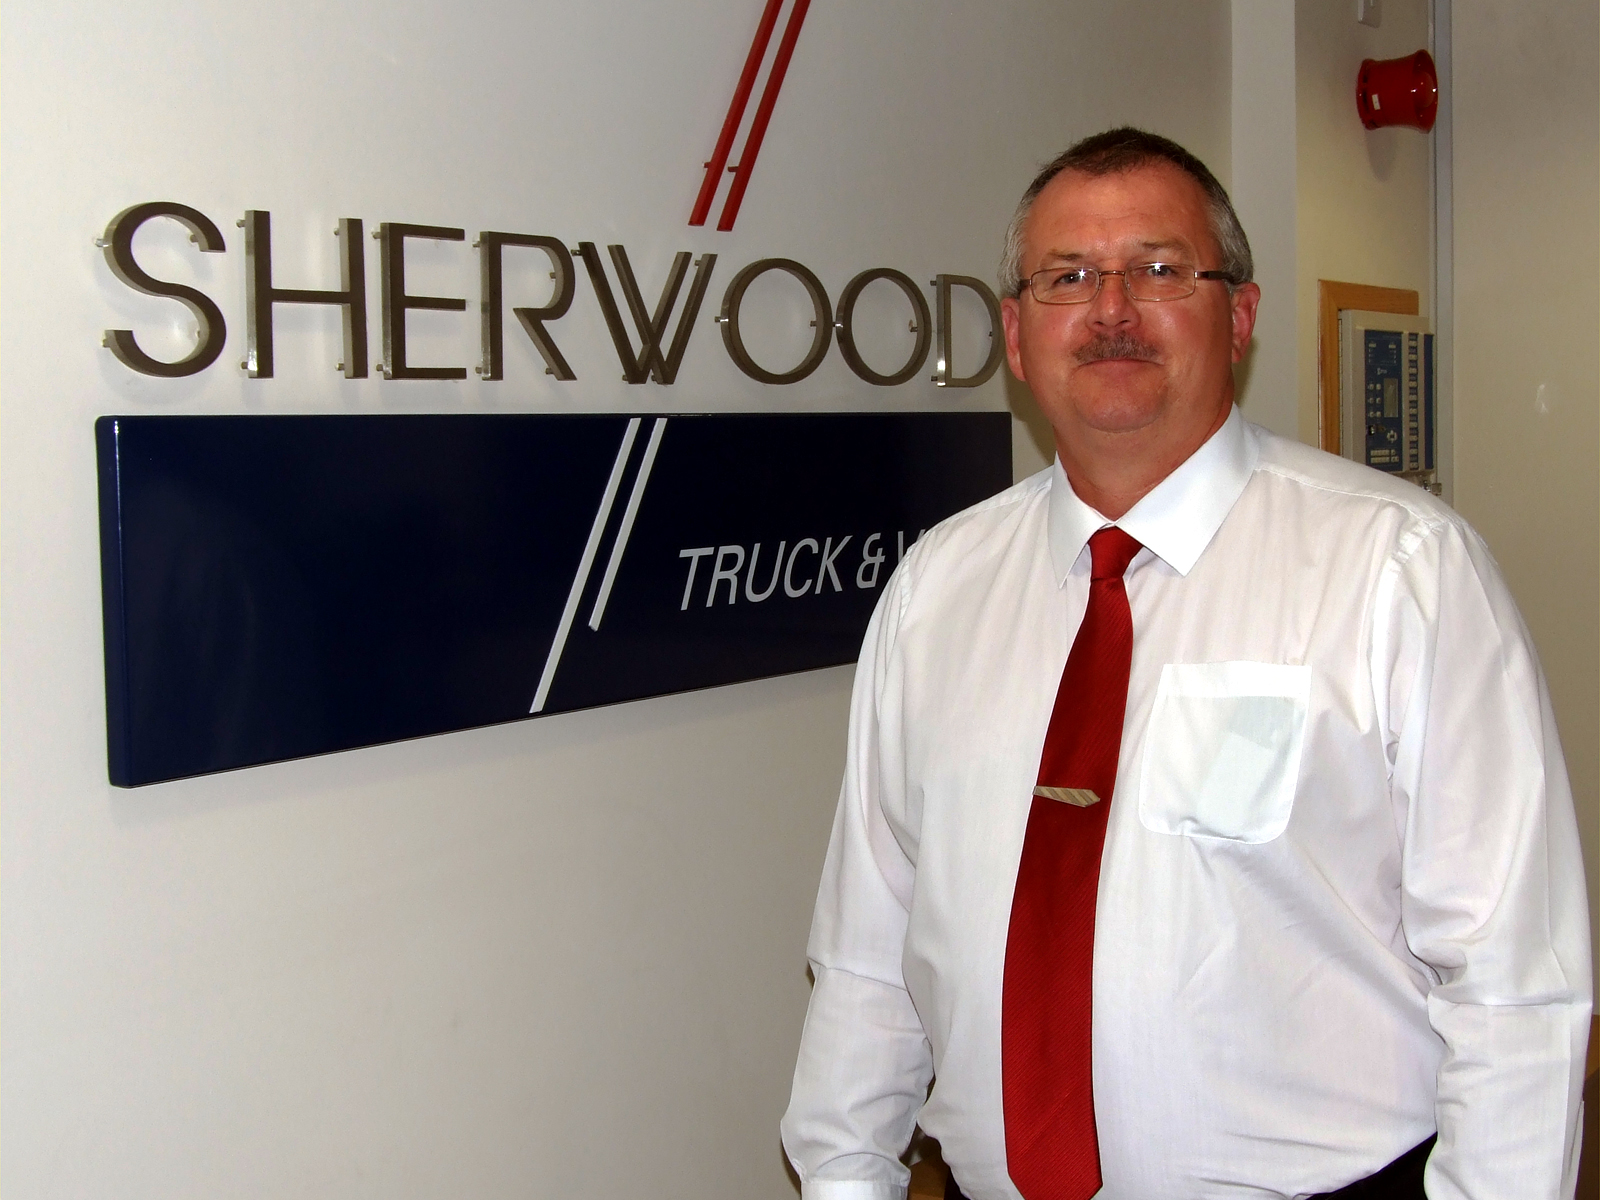 Sherwood Truck And Van Oints Bob Mcgarry As Regional S Manager